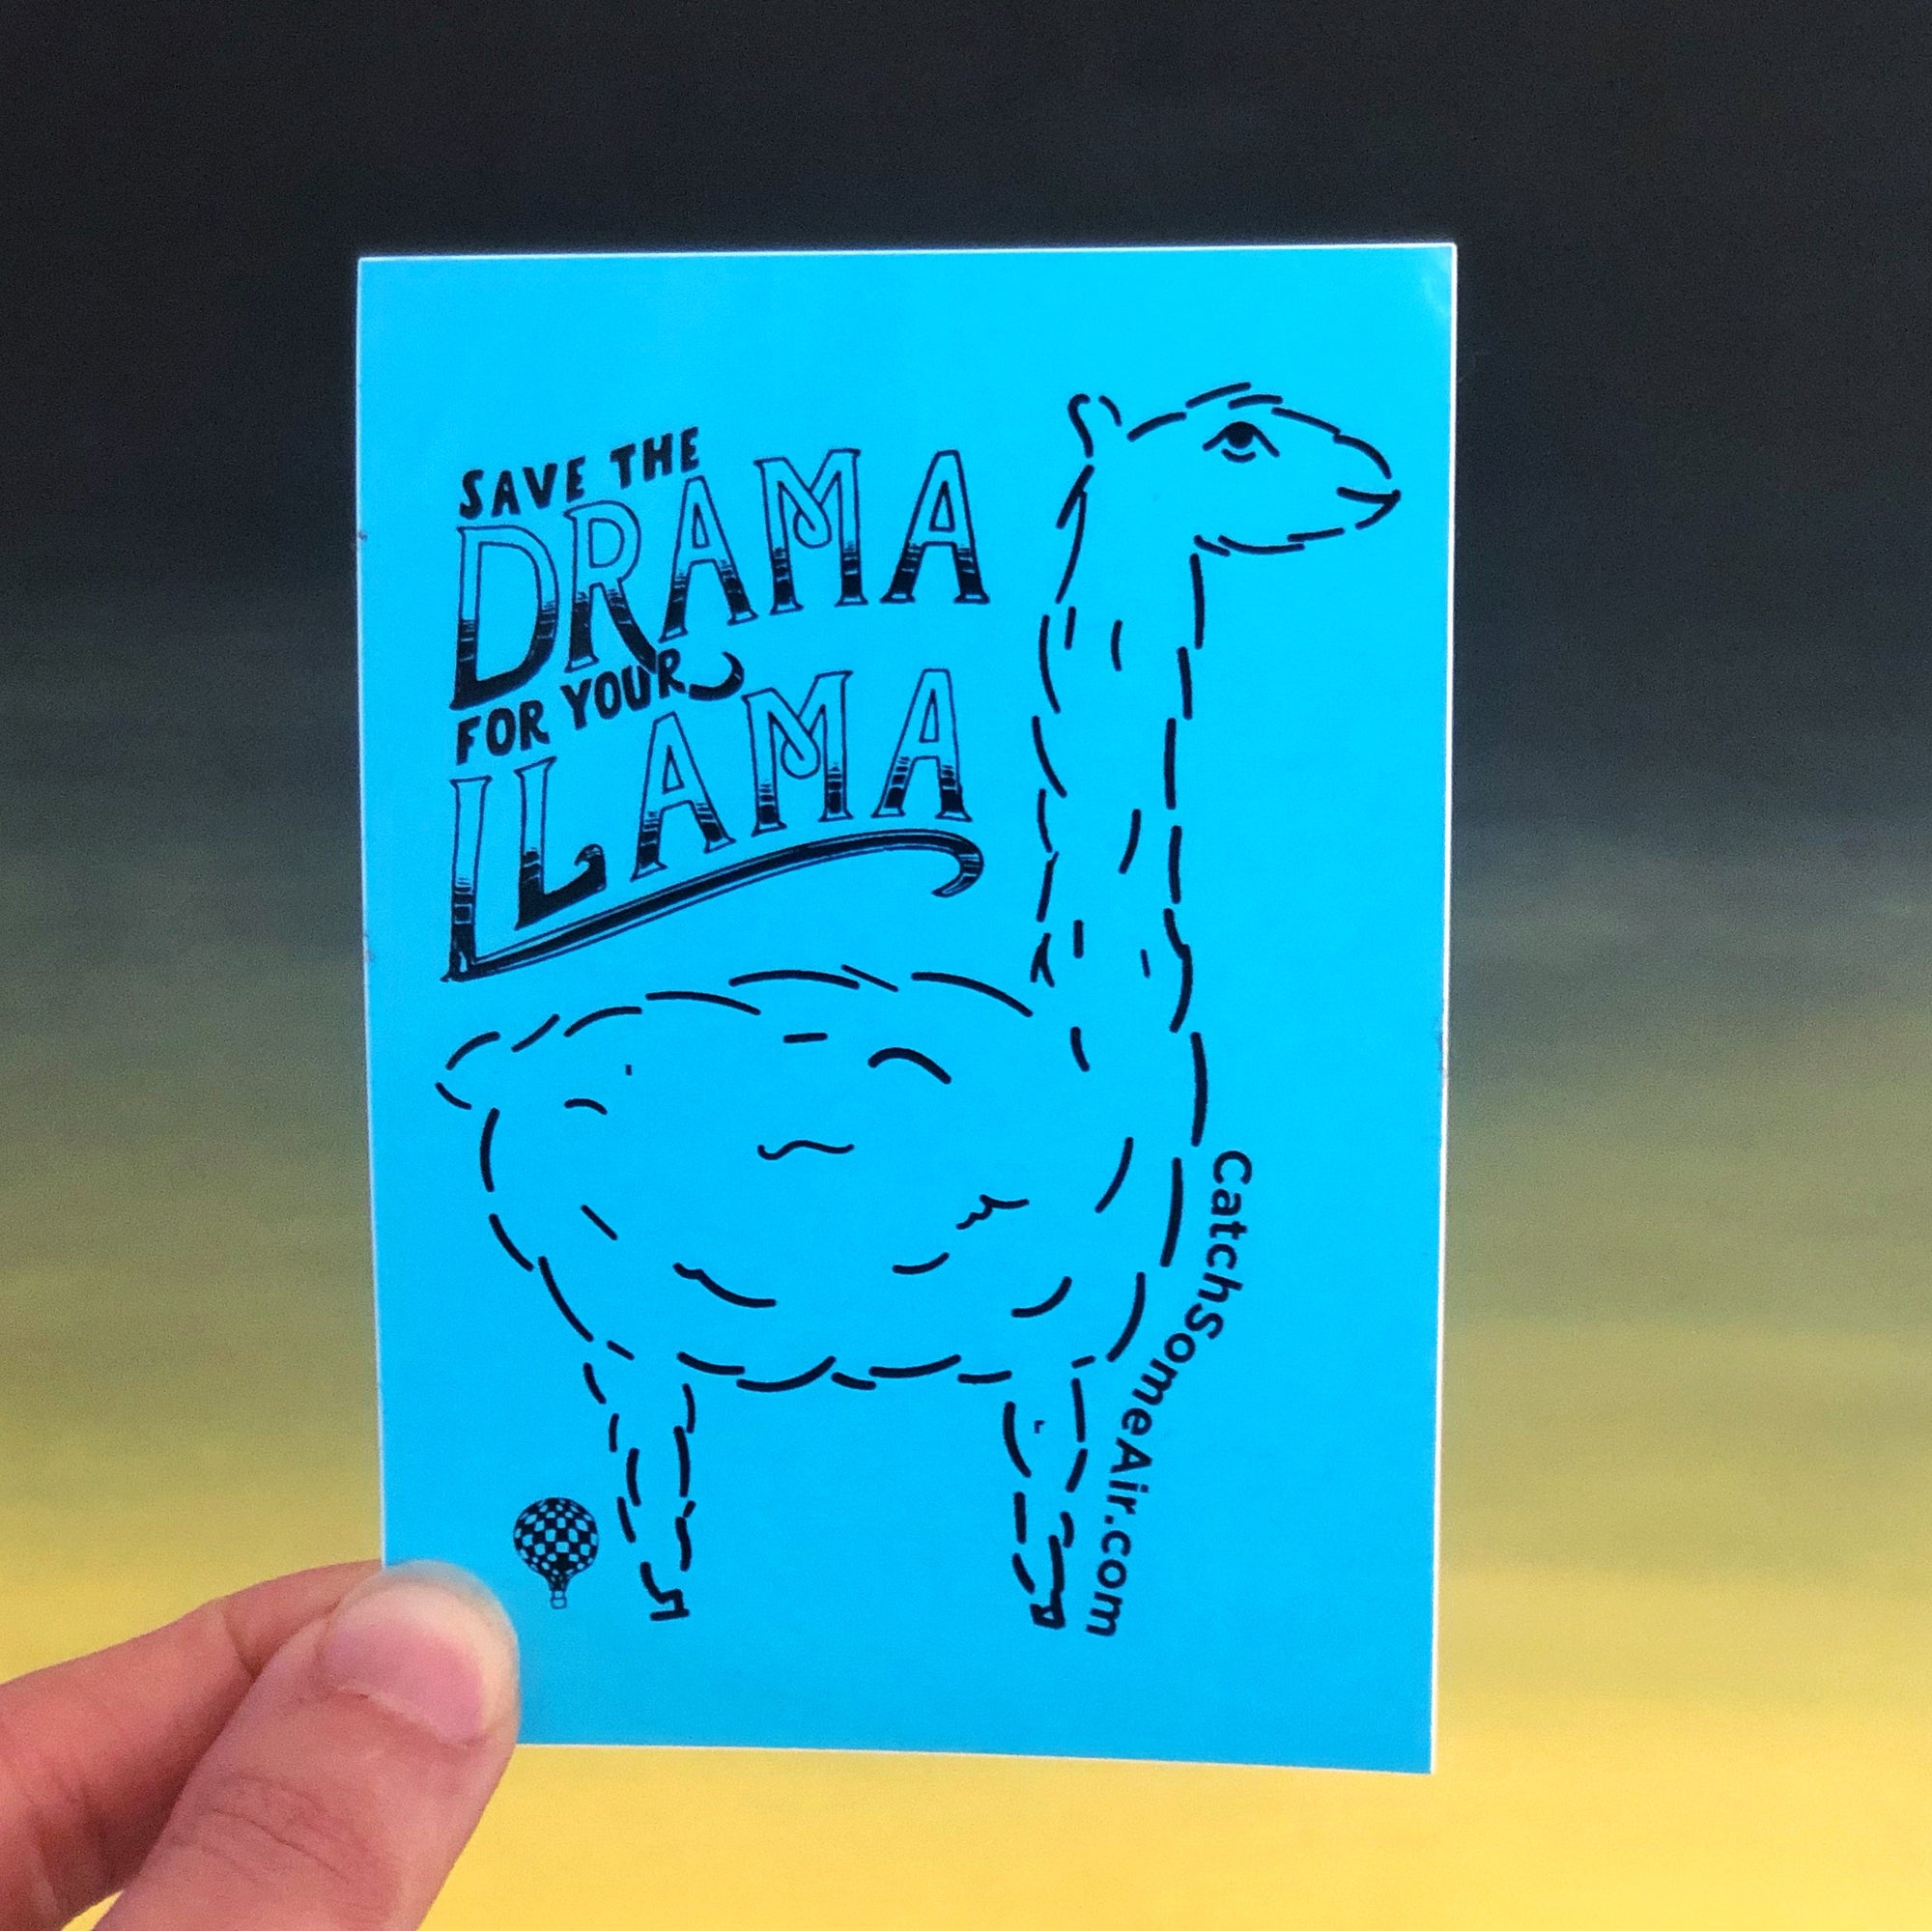 Save The DRAMA For Your LLAMA | sticker